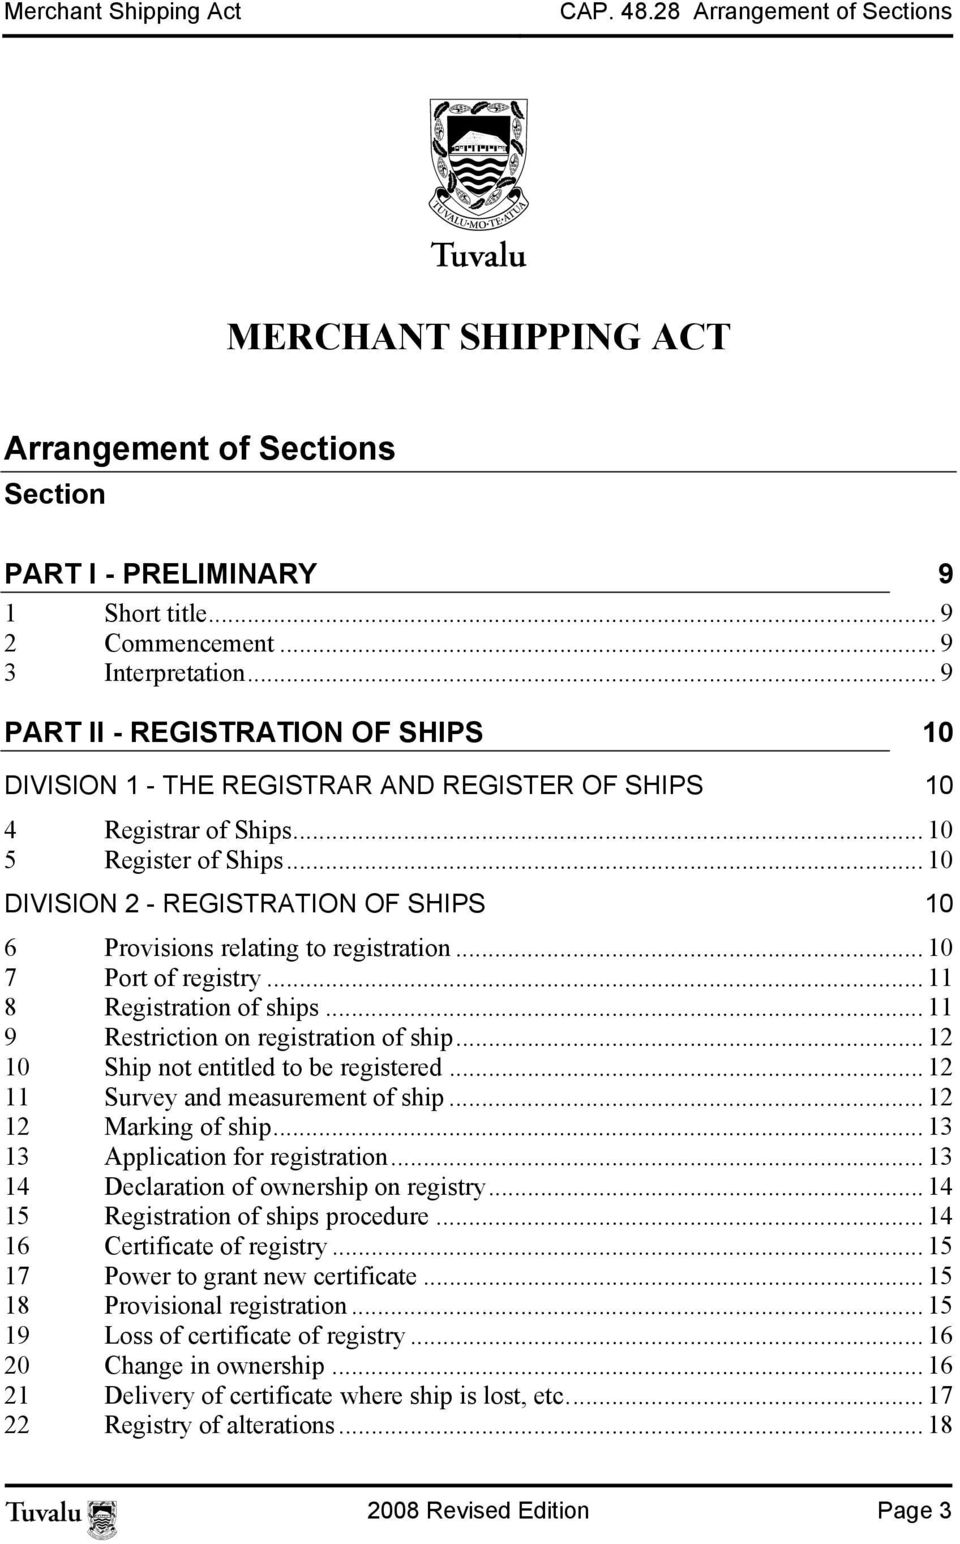 .. 10 DIVISION 2 - REGISTRATION OF SHIPS 10 6 Provisions relating to registration... 10 7 Port of registry... 11 8 Registration of ships... 11 9 Restriction on registration of ship.